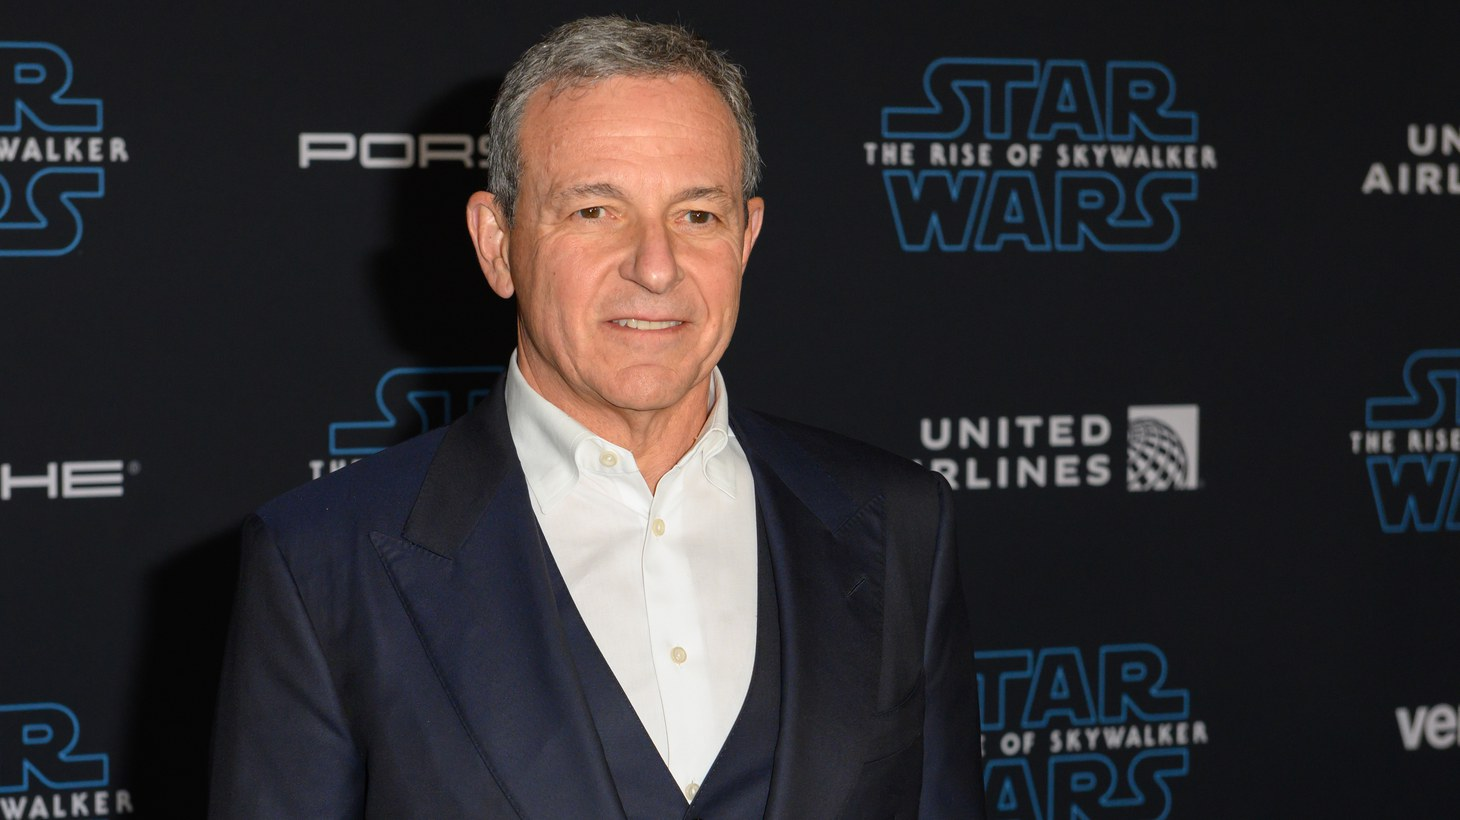 Bob Iger abruptly stepped down as Disney CEO in February 2020. Bob Chapek became the new CEO, but Iger has continued to stay at the company through 2021.